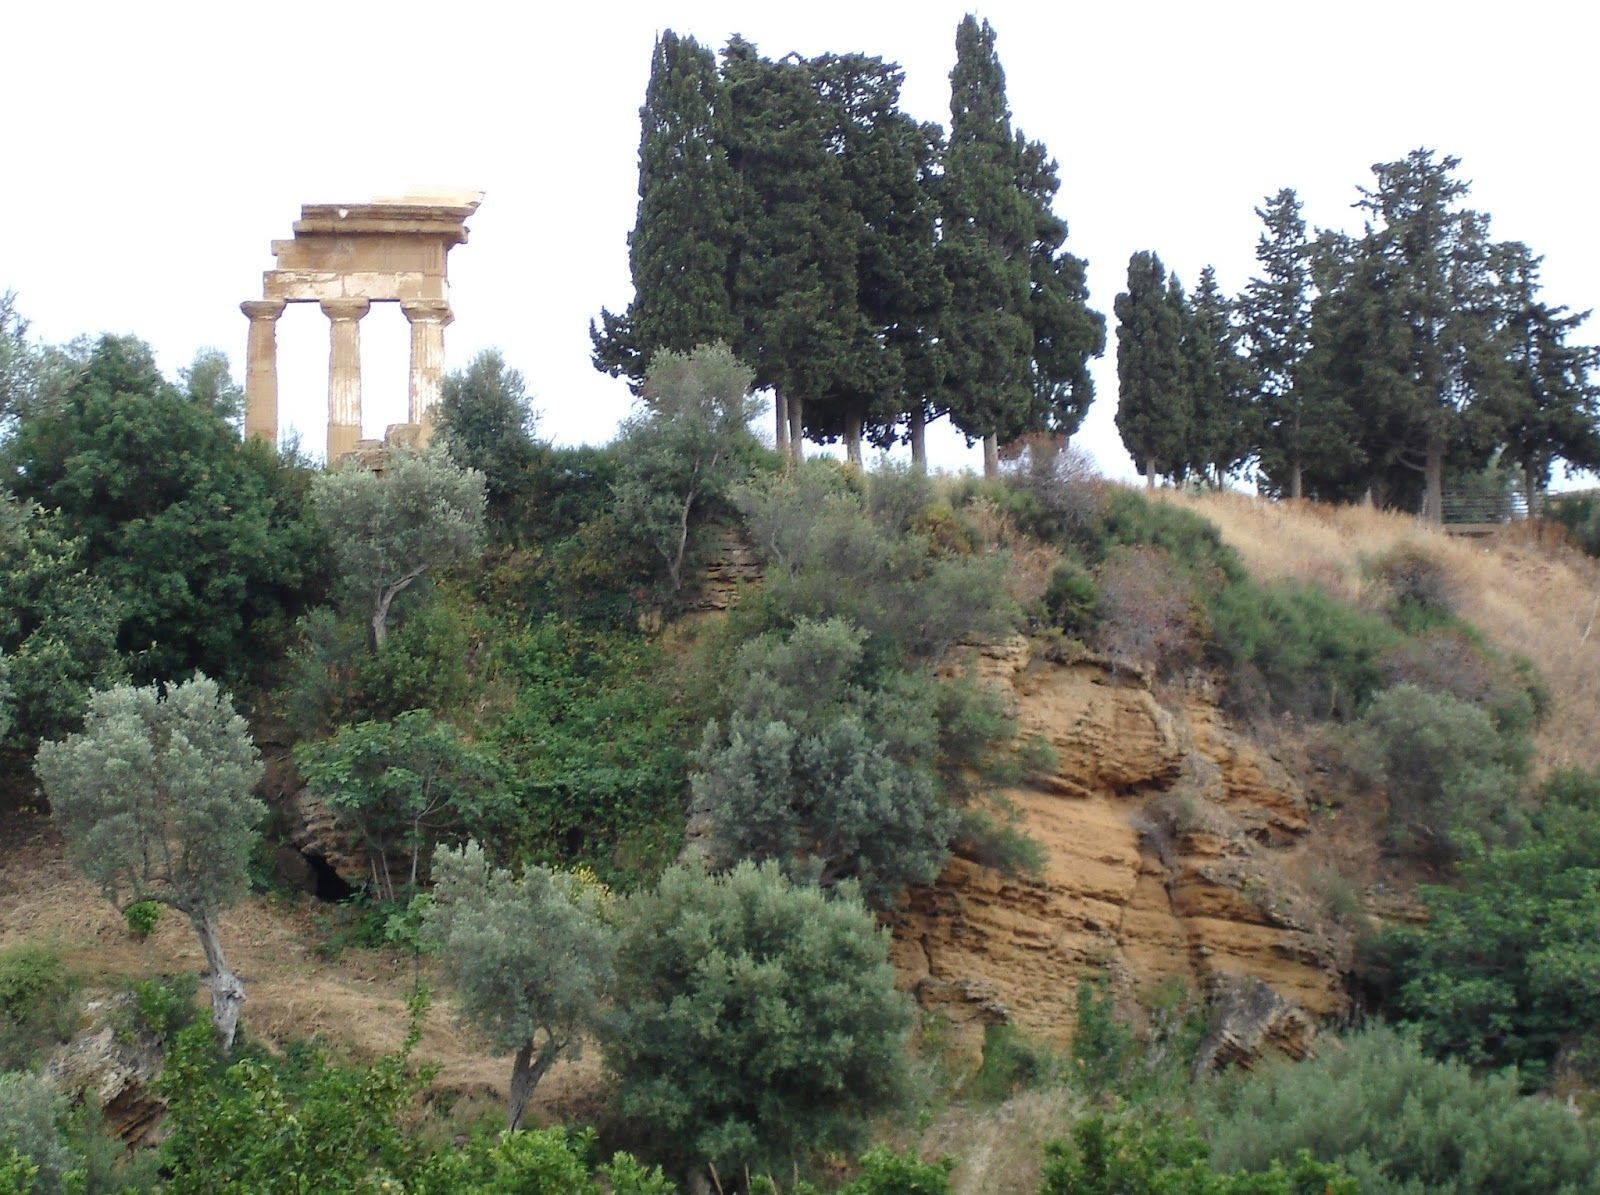 Kolymbetra Garden, in Sicily's Valley of the Temples - http://www.worldwidewriter.co.uk/2014/05/valley-of-temples-sicilys-greek-heritage.html